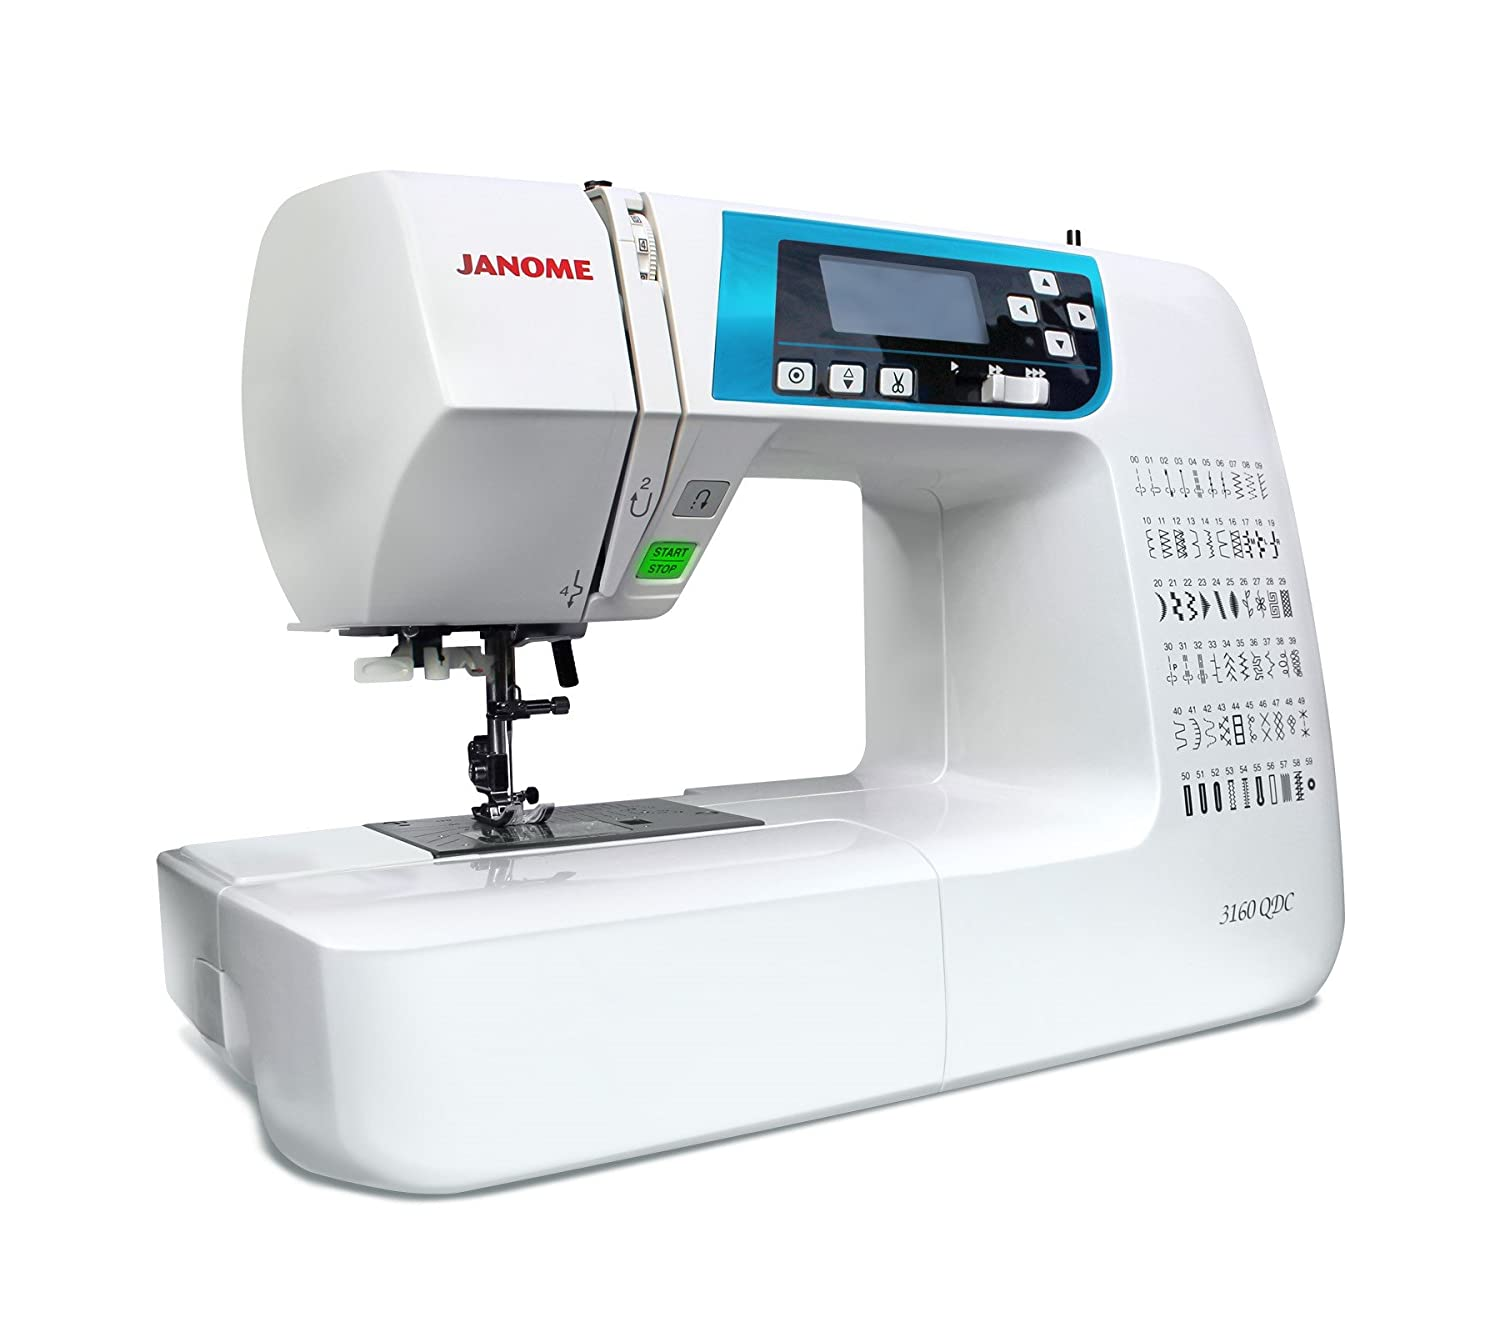 machine sewing janome quilting computerized quilt mod joann web